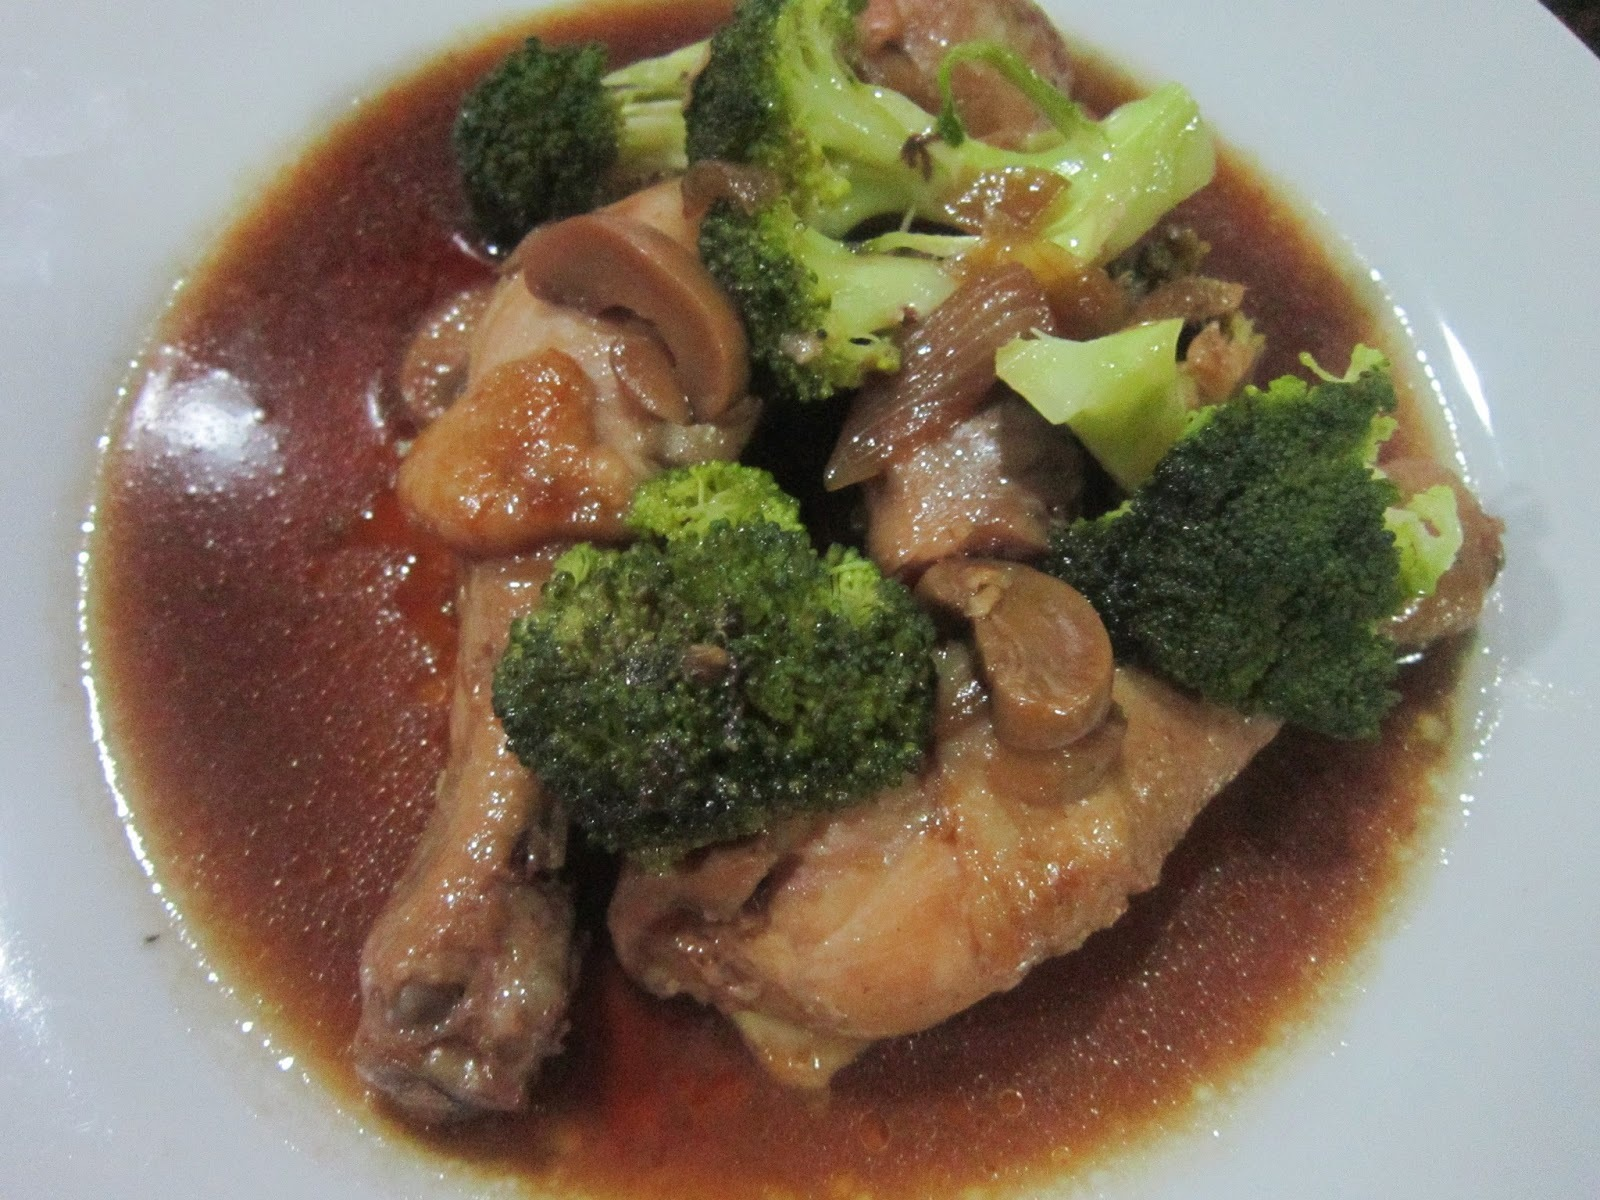 CHICKEN MUSHROOM and BROCCOLI in OYSTER SAUCE